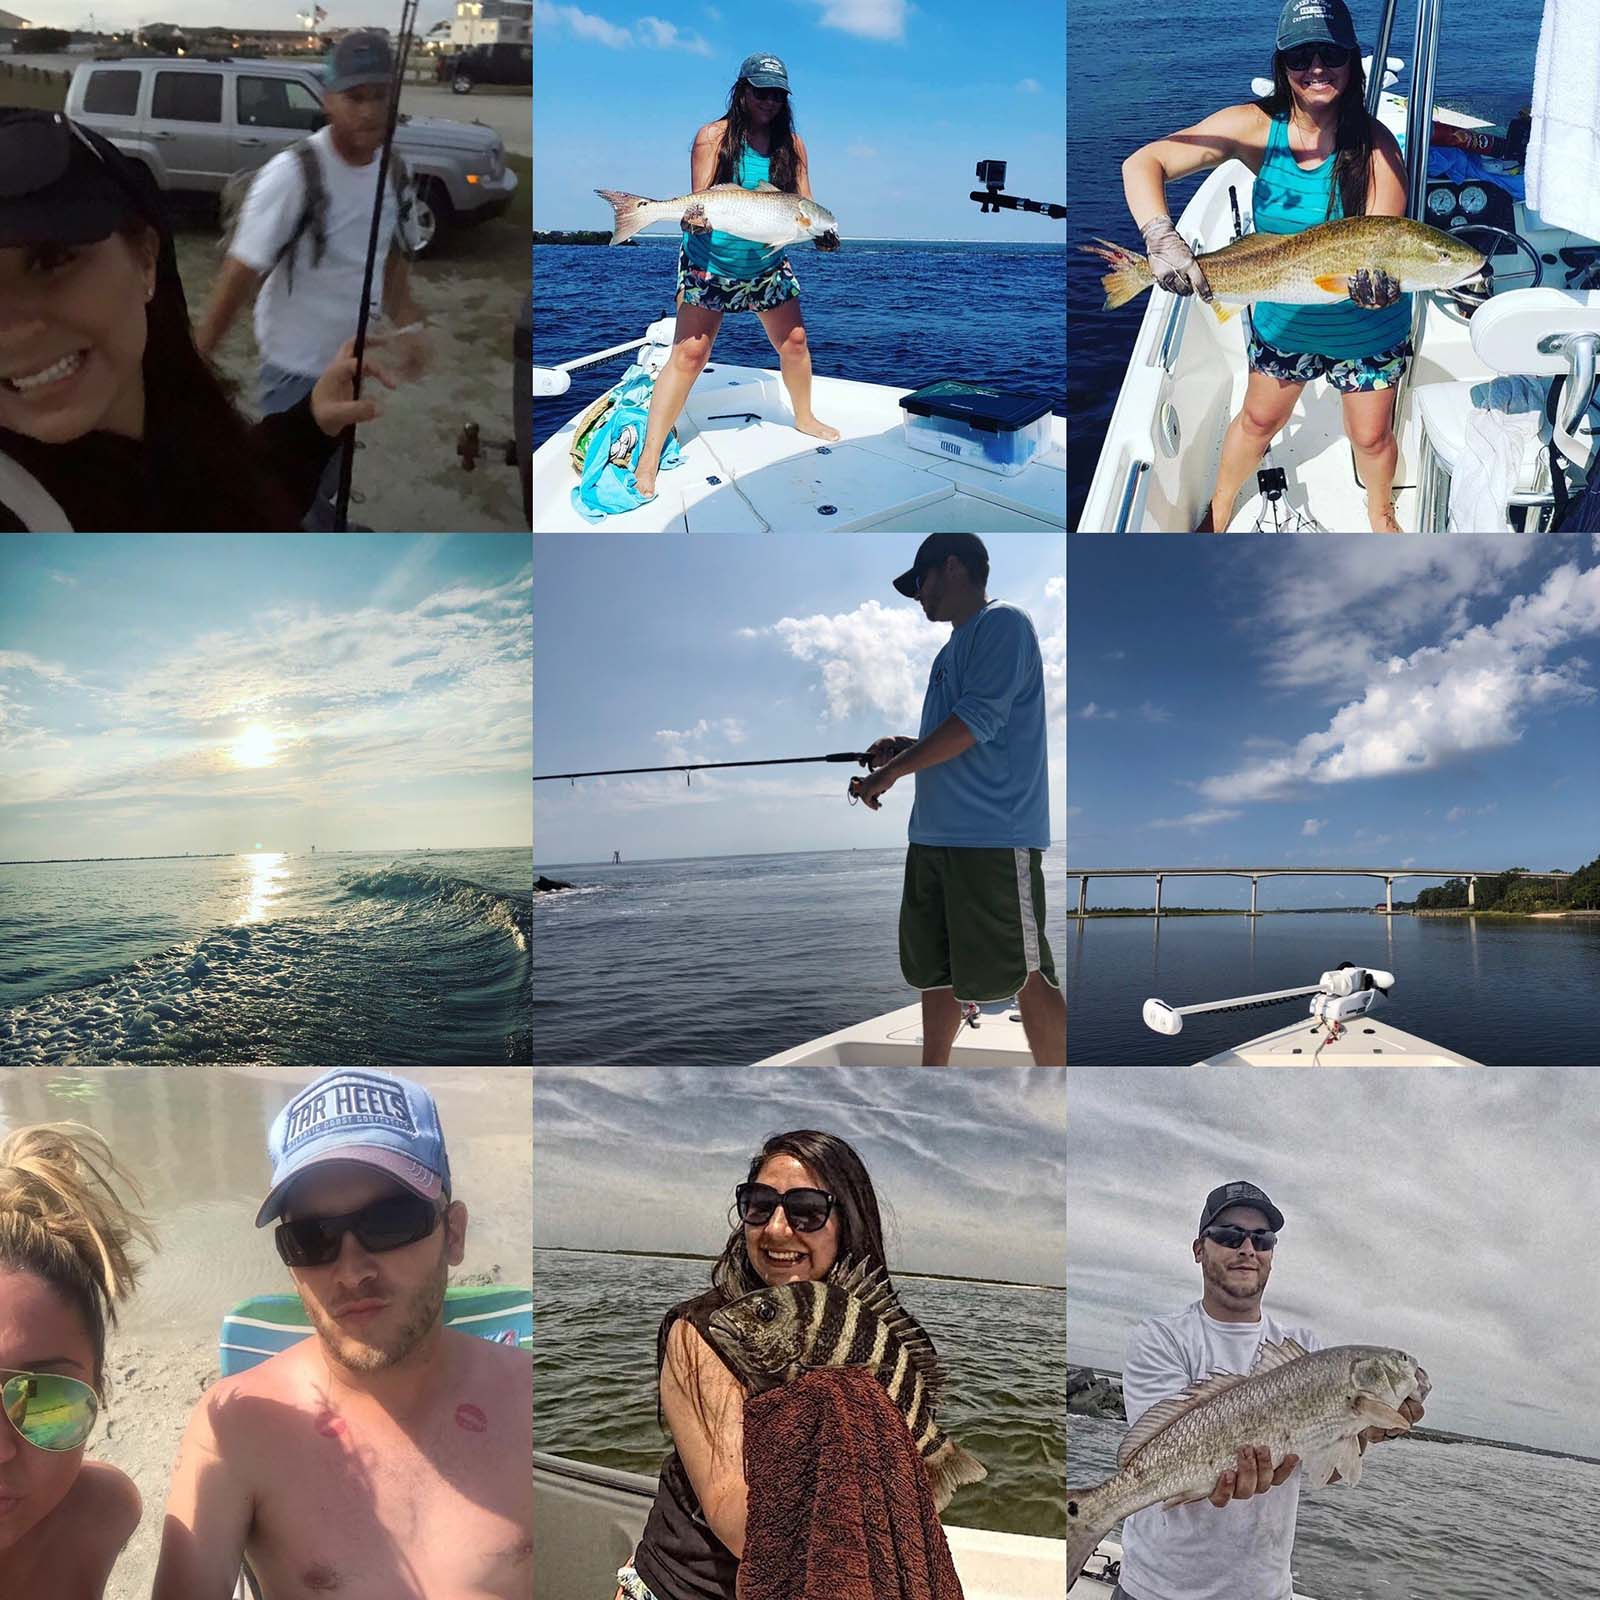 collage of a group going fishing in the ocean